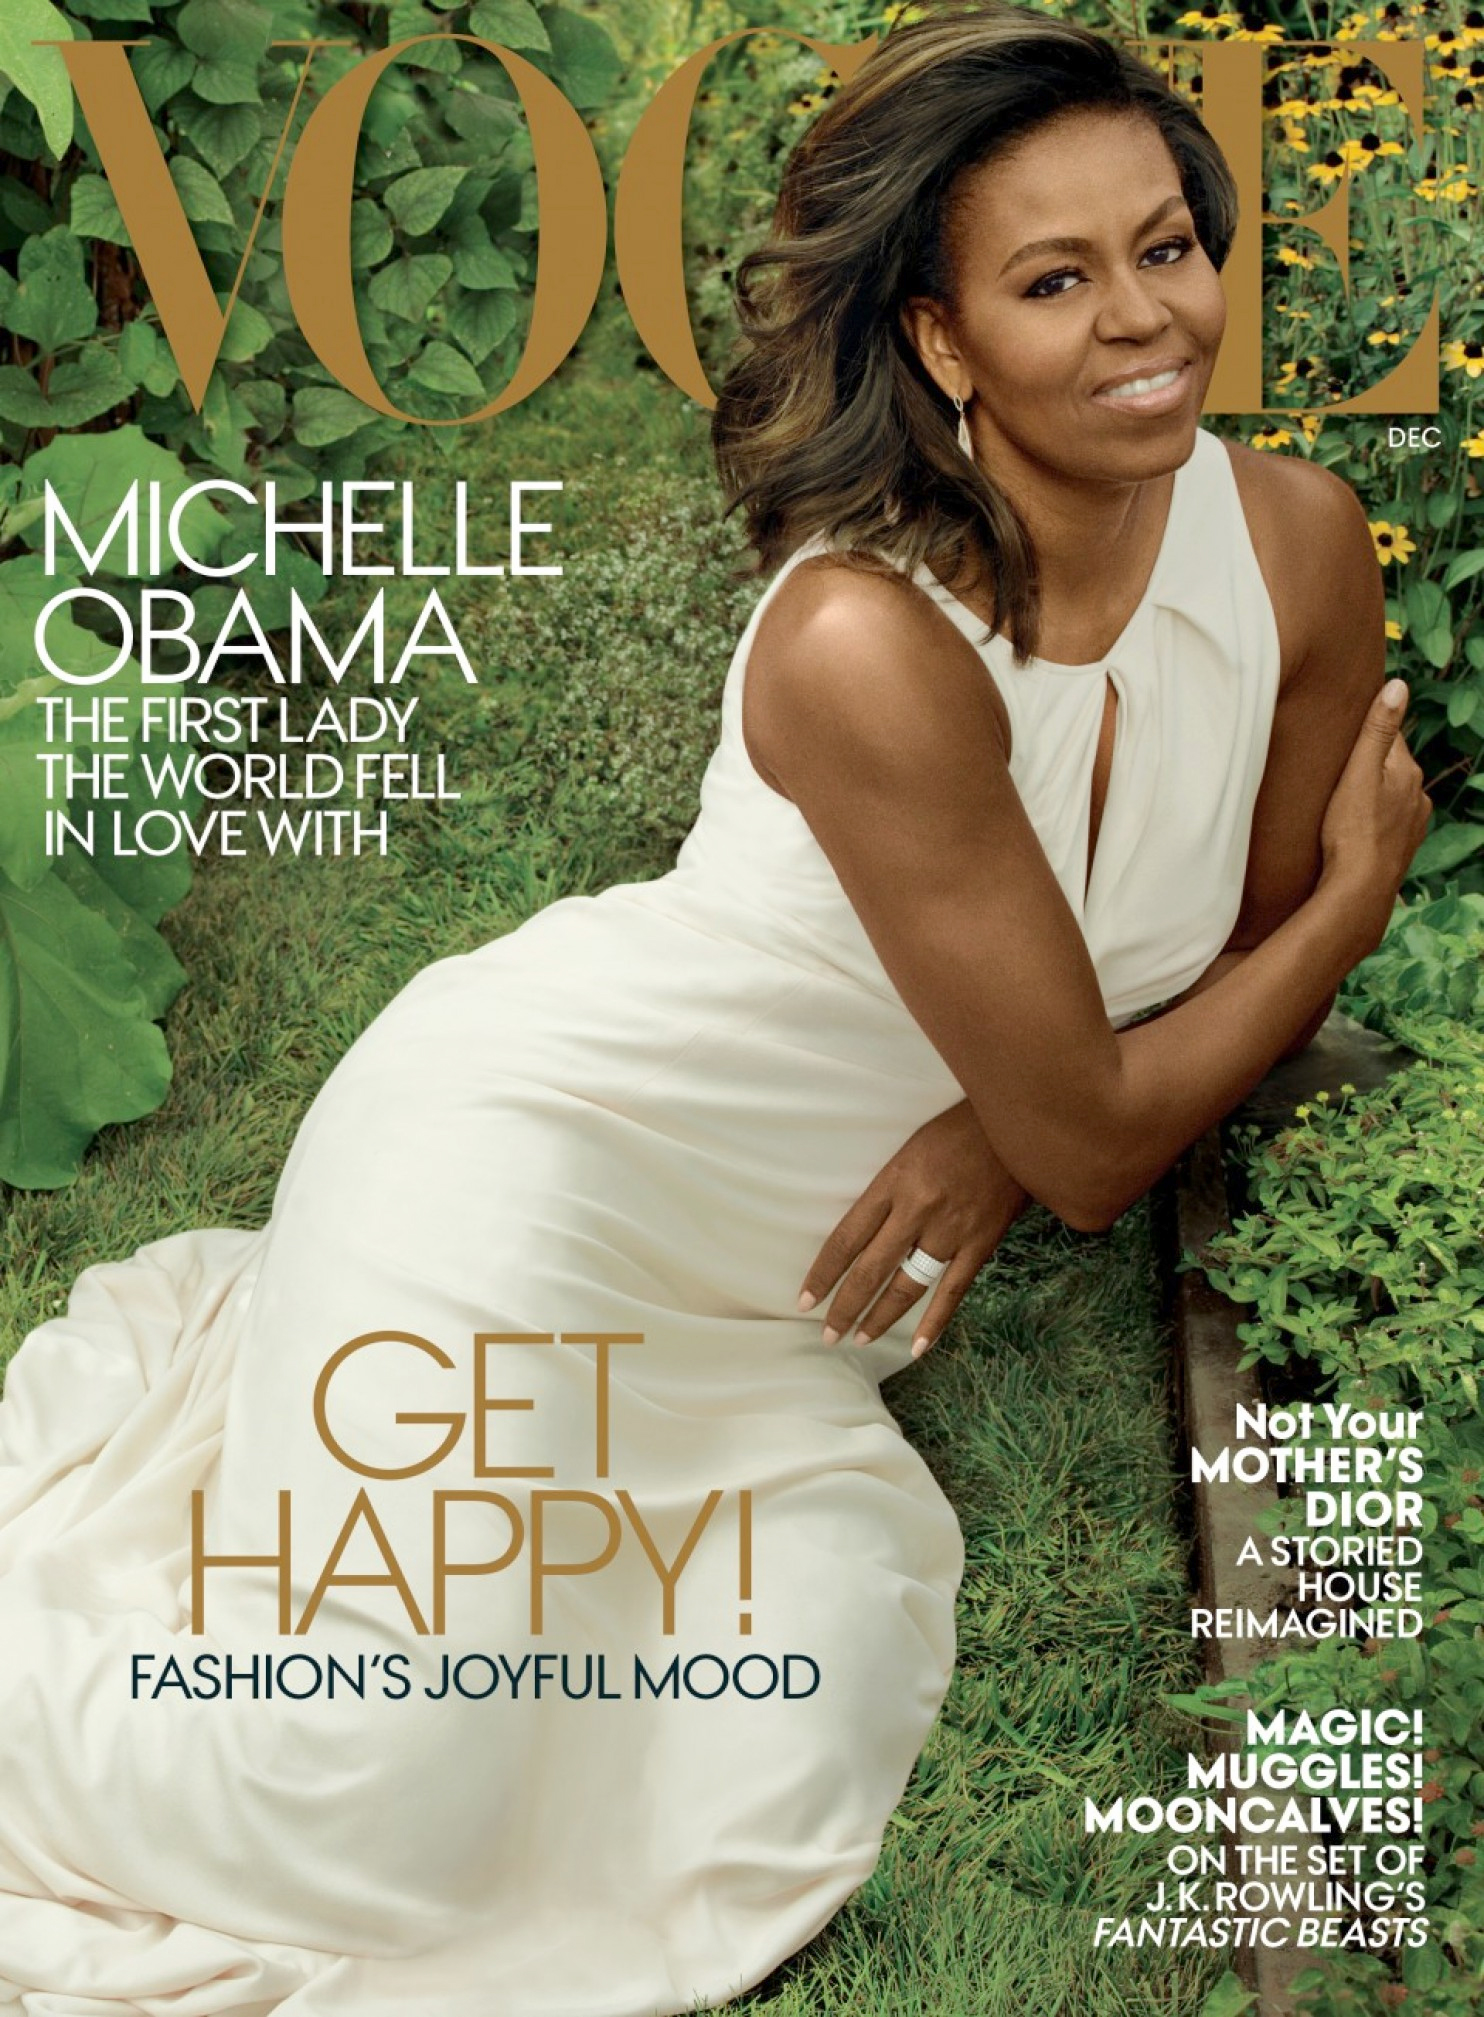 The December cover of Vogue magazine features first lady Michelle Obama, photographed by Annie Leibovitz, Vogue